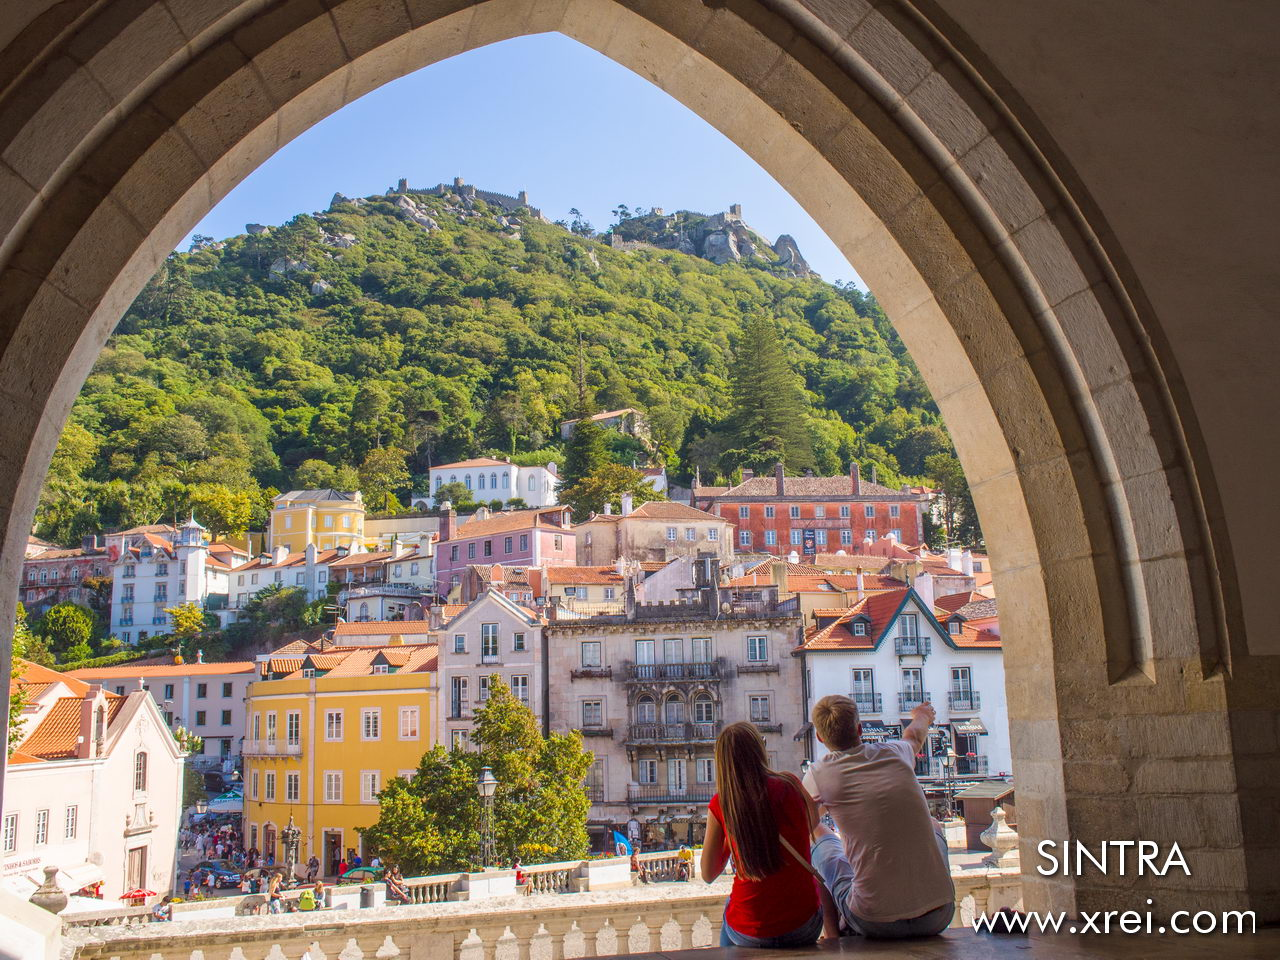 Sintra is a Portuguese village known for its romanticism. It is a village of palaces, castles, and stately homes from the time of kings, and queens, princes and princesses ... In this image we observe the environment of the village, with the Moorish castle at the top of the mountain